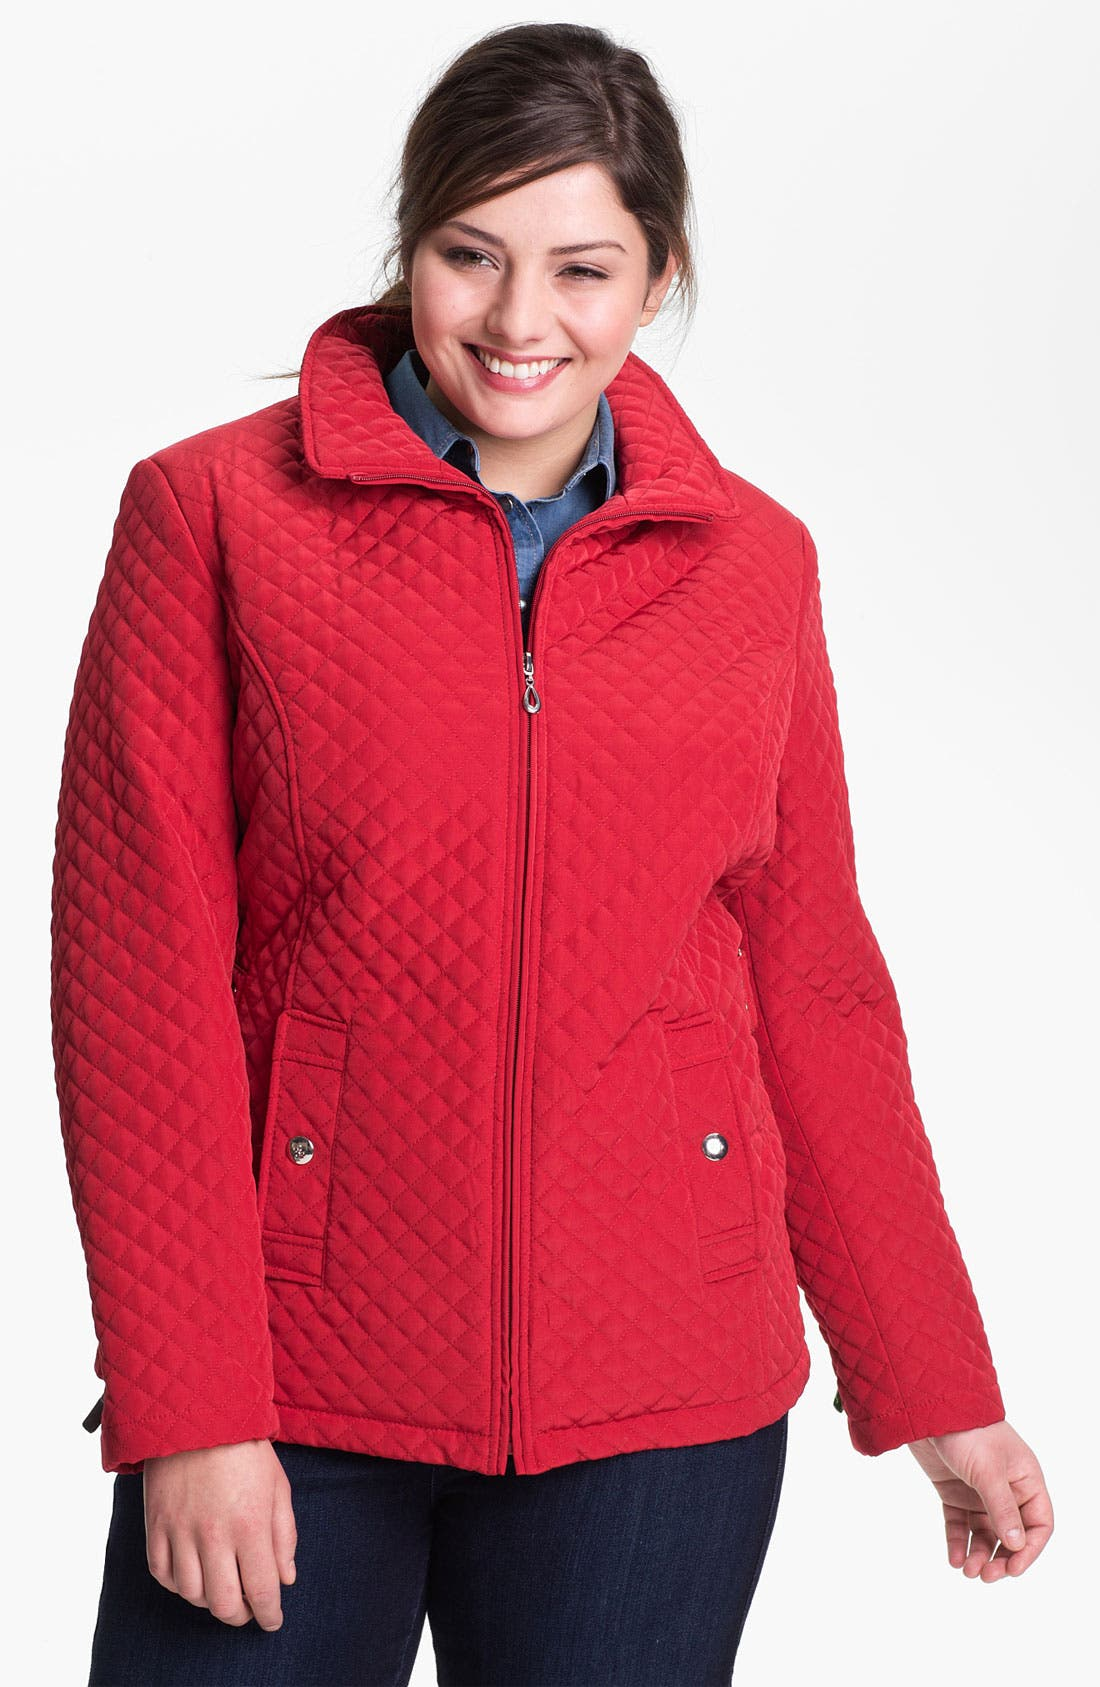 Alternate Image 1 Selected - Gallery Zip Front Quilted Jacket (Plus Size)